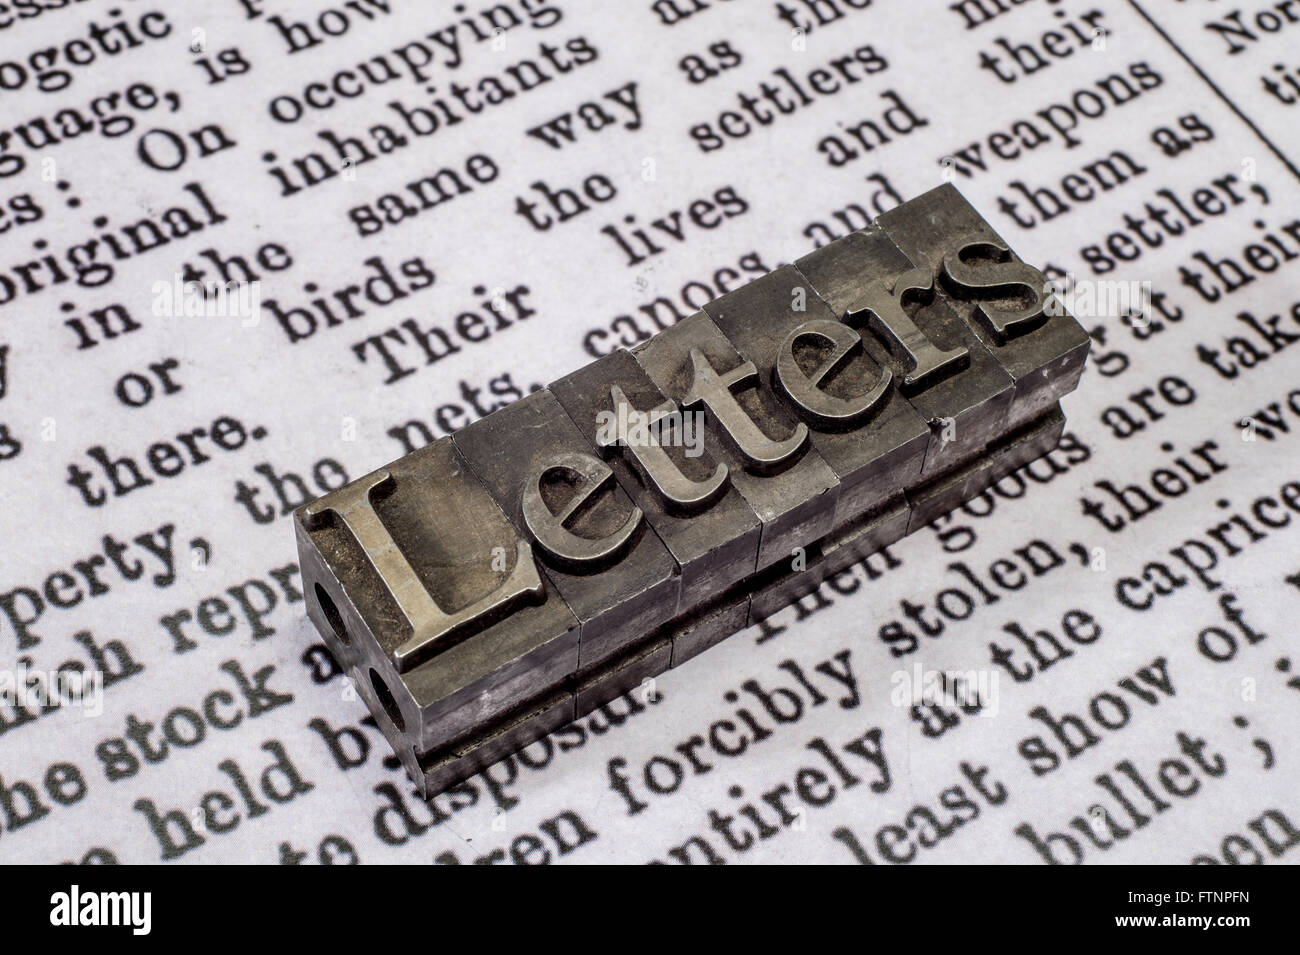 printing press block letters on newspaper print arranged to display the word letters